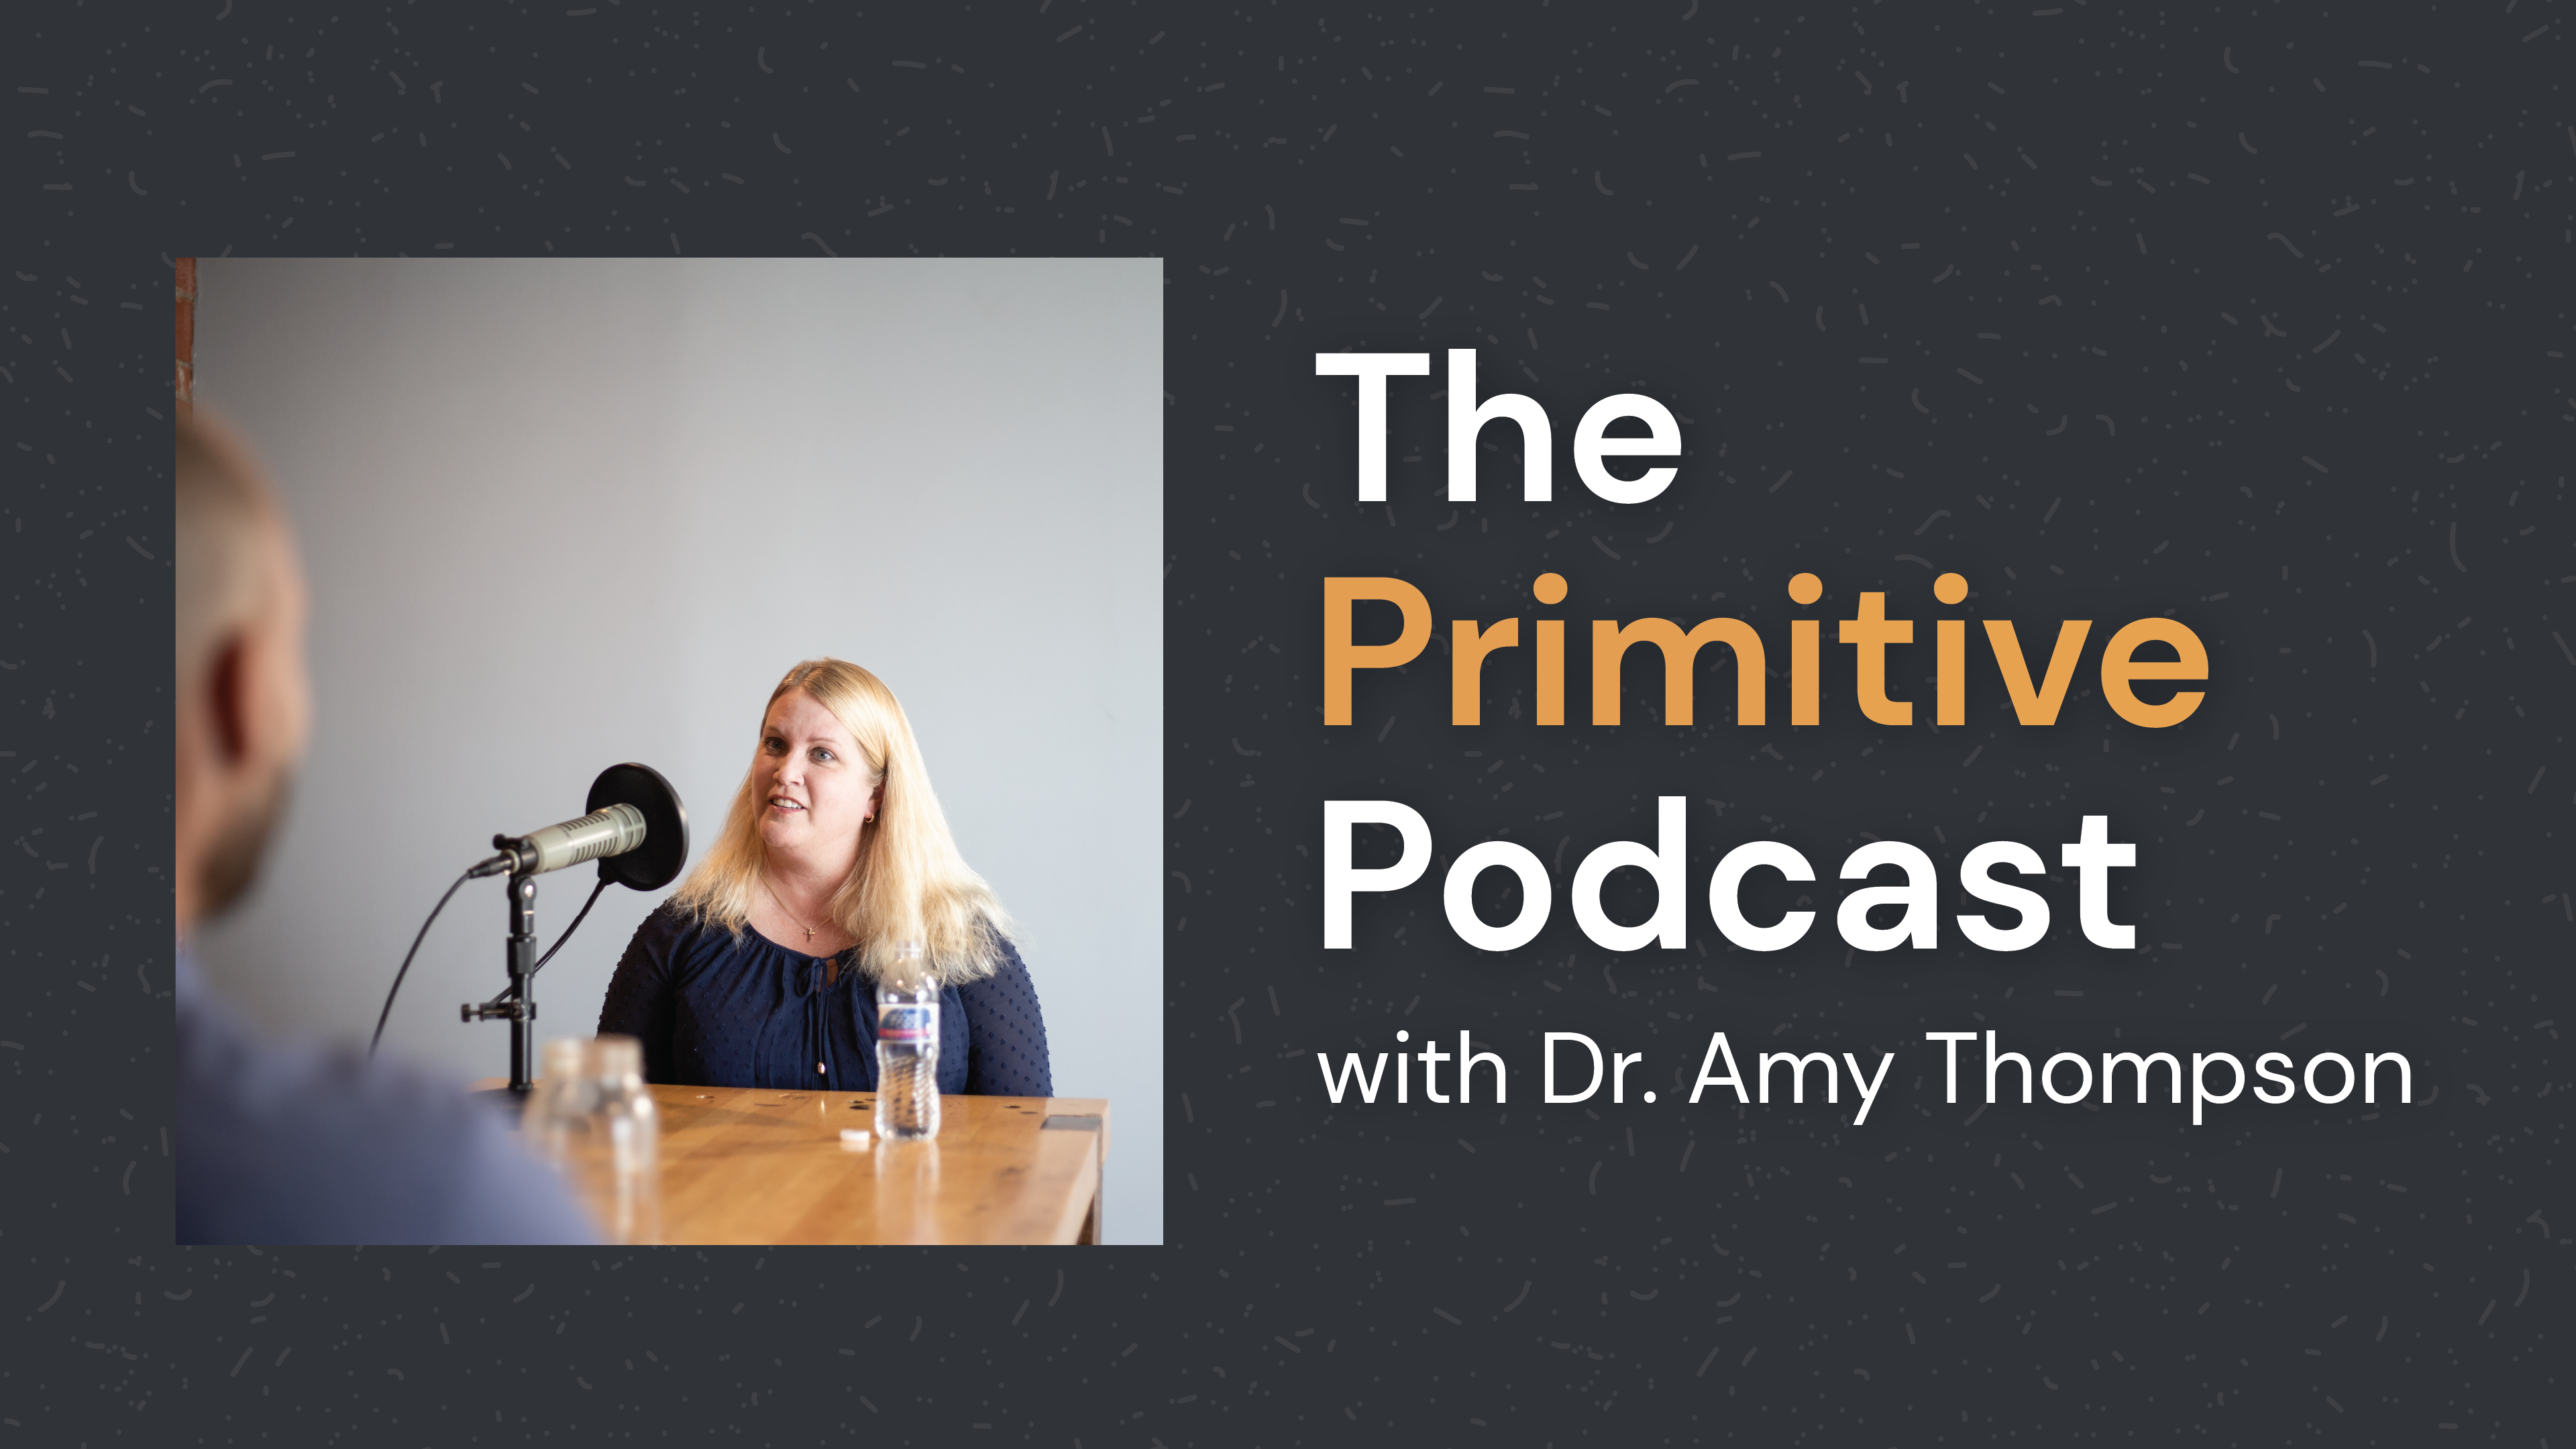 The Primitive Podcast with Dr. Amy Thompson